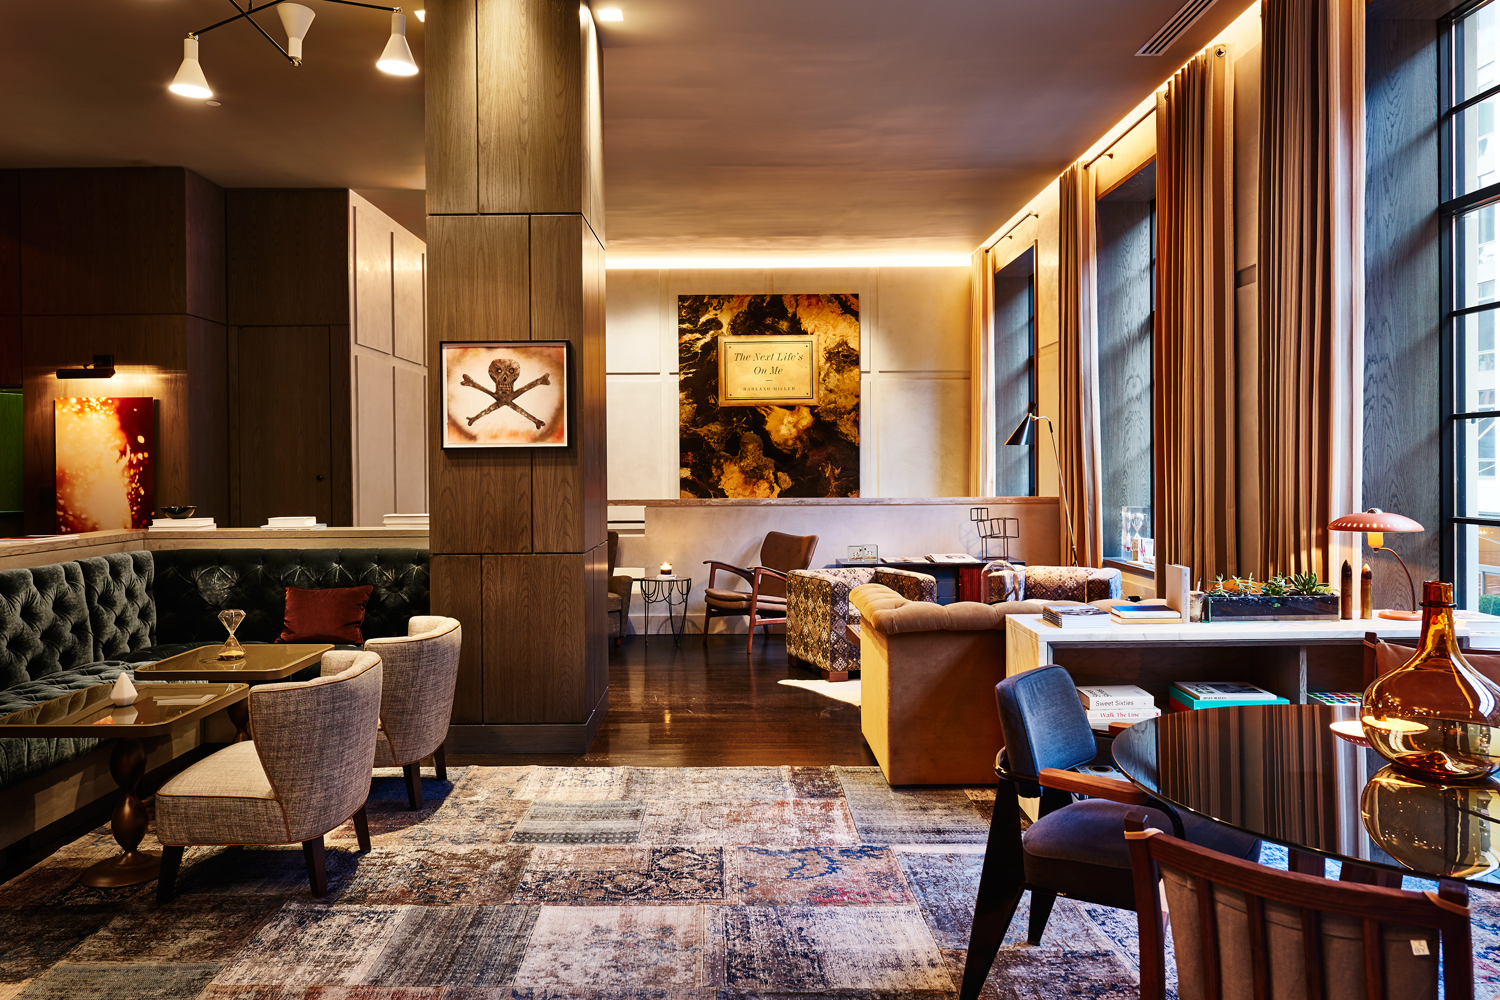 New York Curated Fall Tour 2016 Luxury Hotel in SoHo